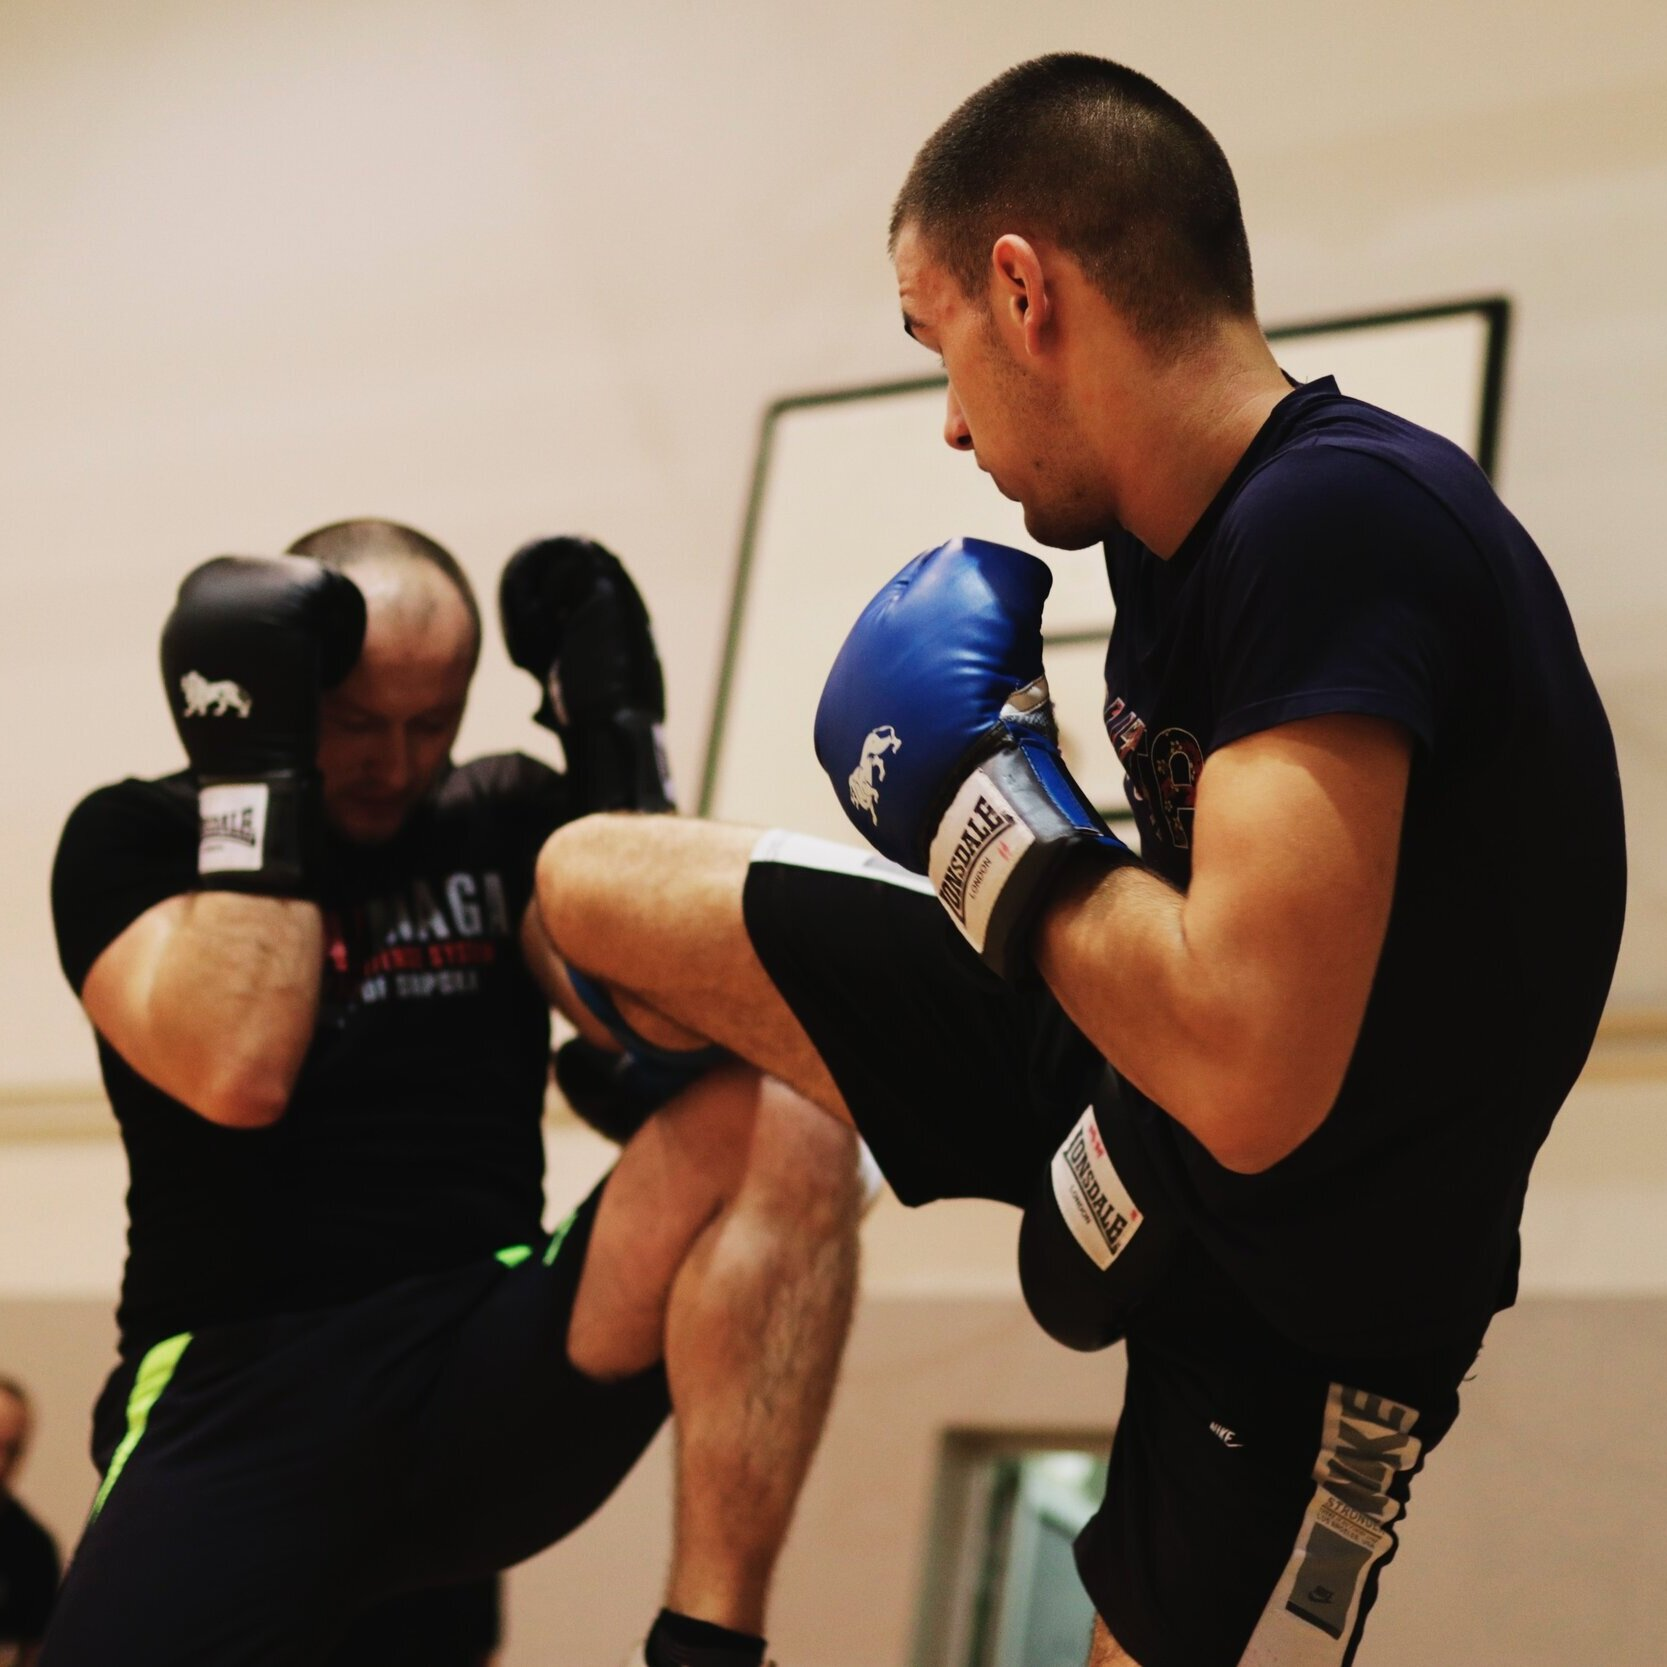 KICK BOXING - Kickboxing is featuring at the World Martial Arts games this month so we thought we would hand the article over to really inspiring young kickboxers who are also teaching, guiding and helping others in the sport and in life.